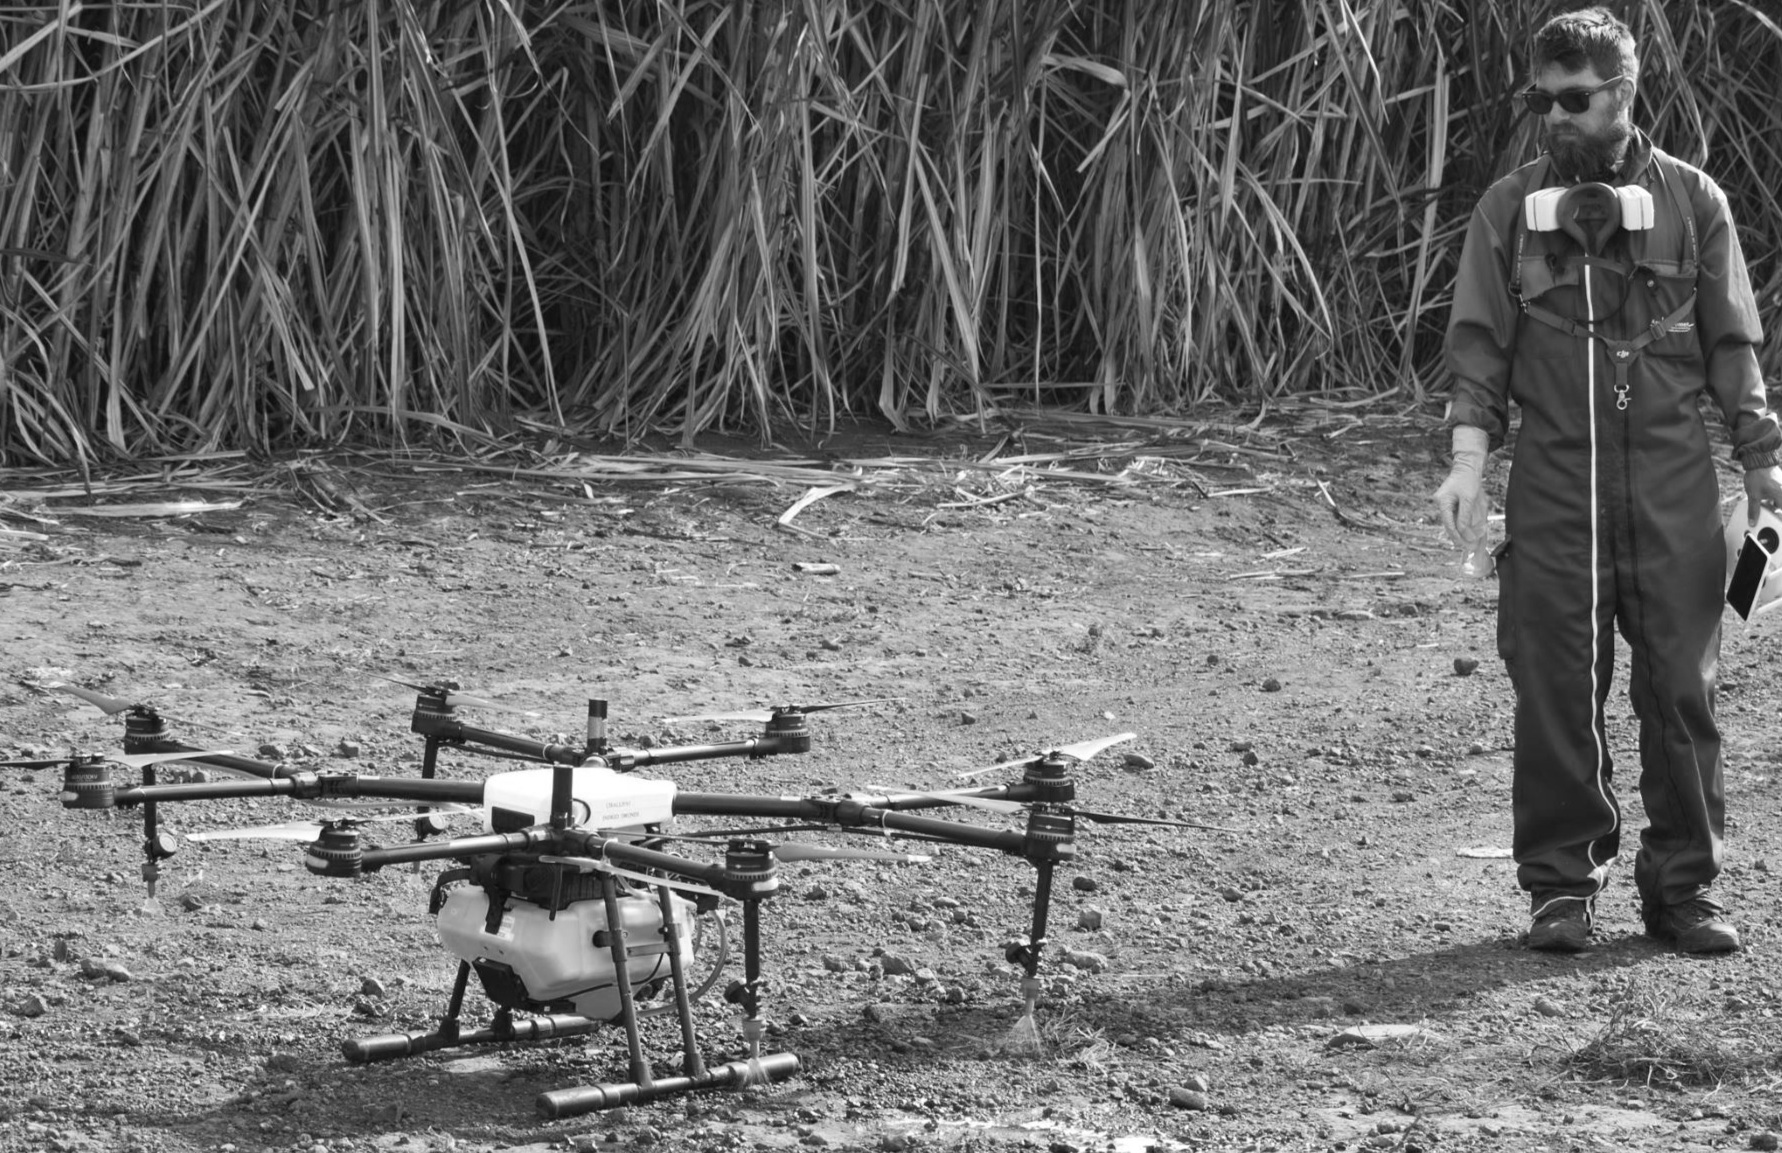 Distribuidor Autorizado DJI Agras Costa Rica - Software y Hardware para la agricultura Tropical.